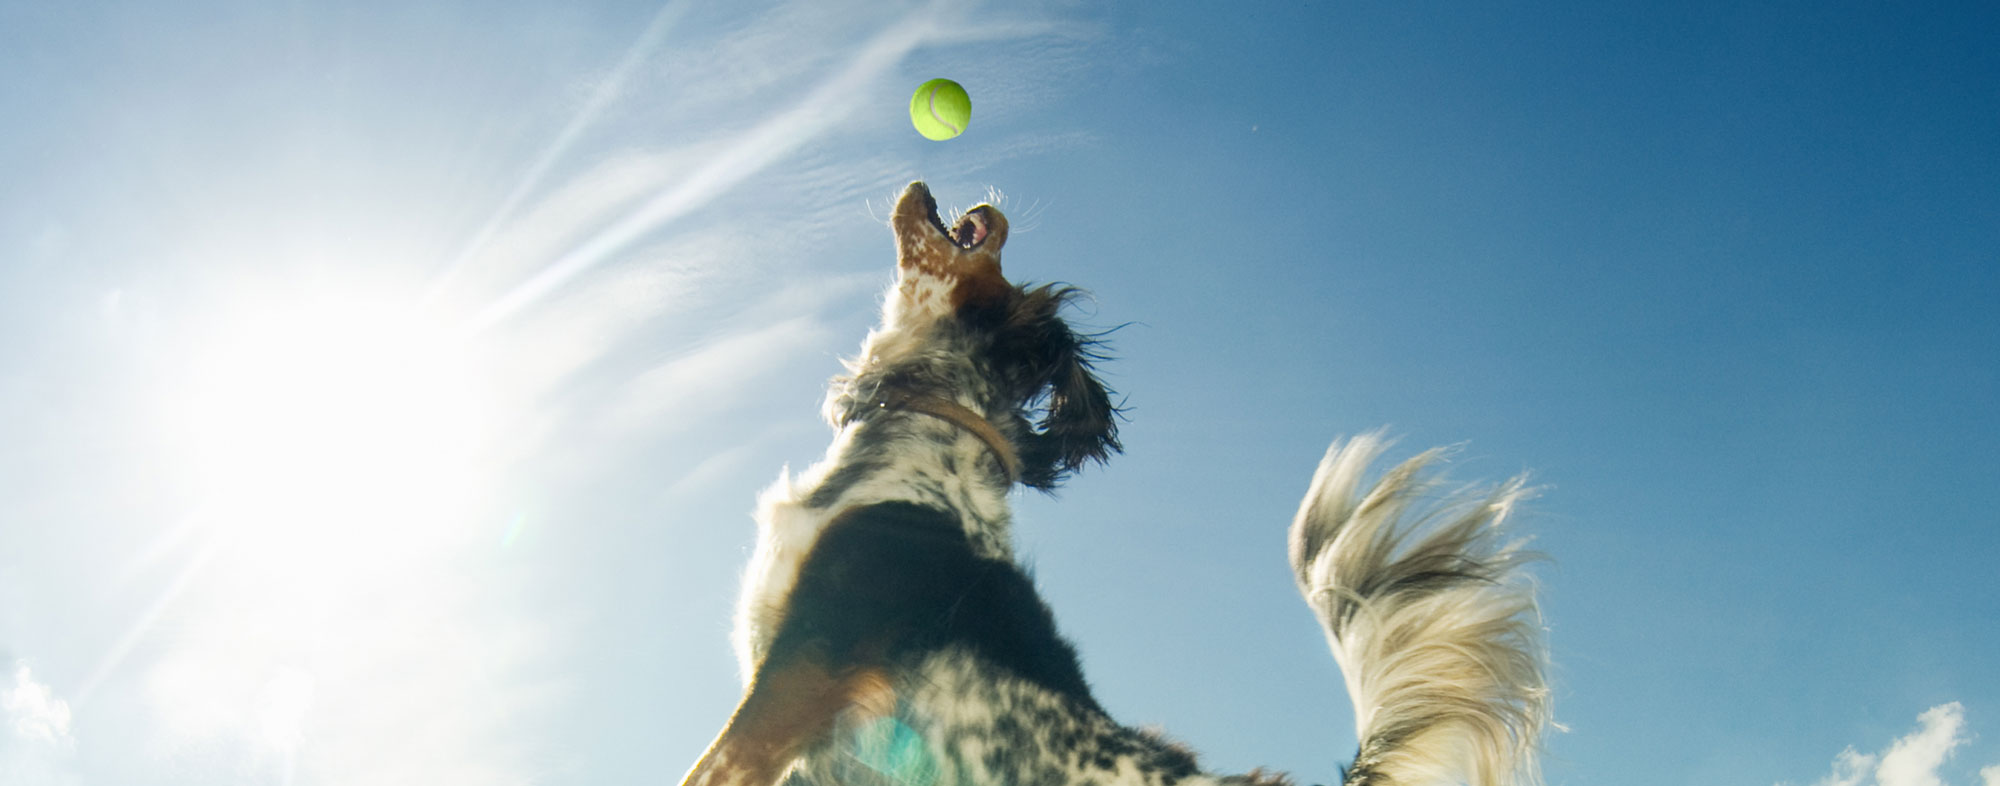 Jumping to catch a tennis ball at the park, dog exhibits playful behavior